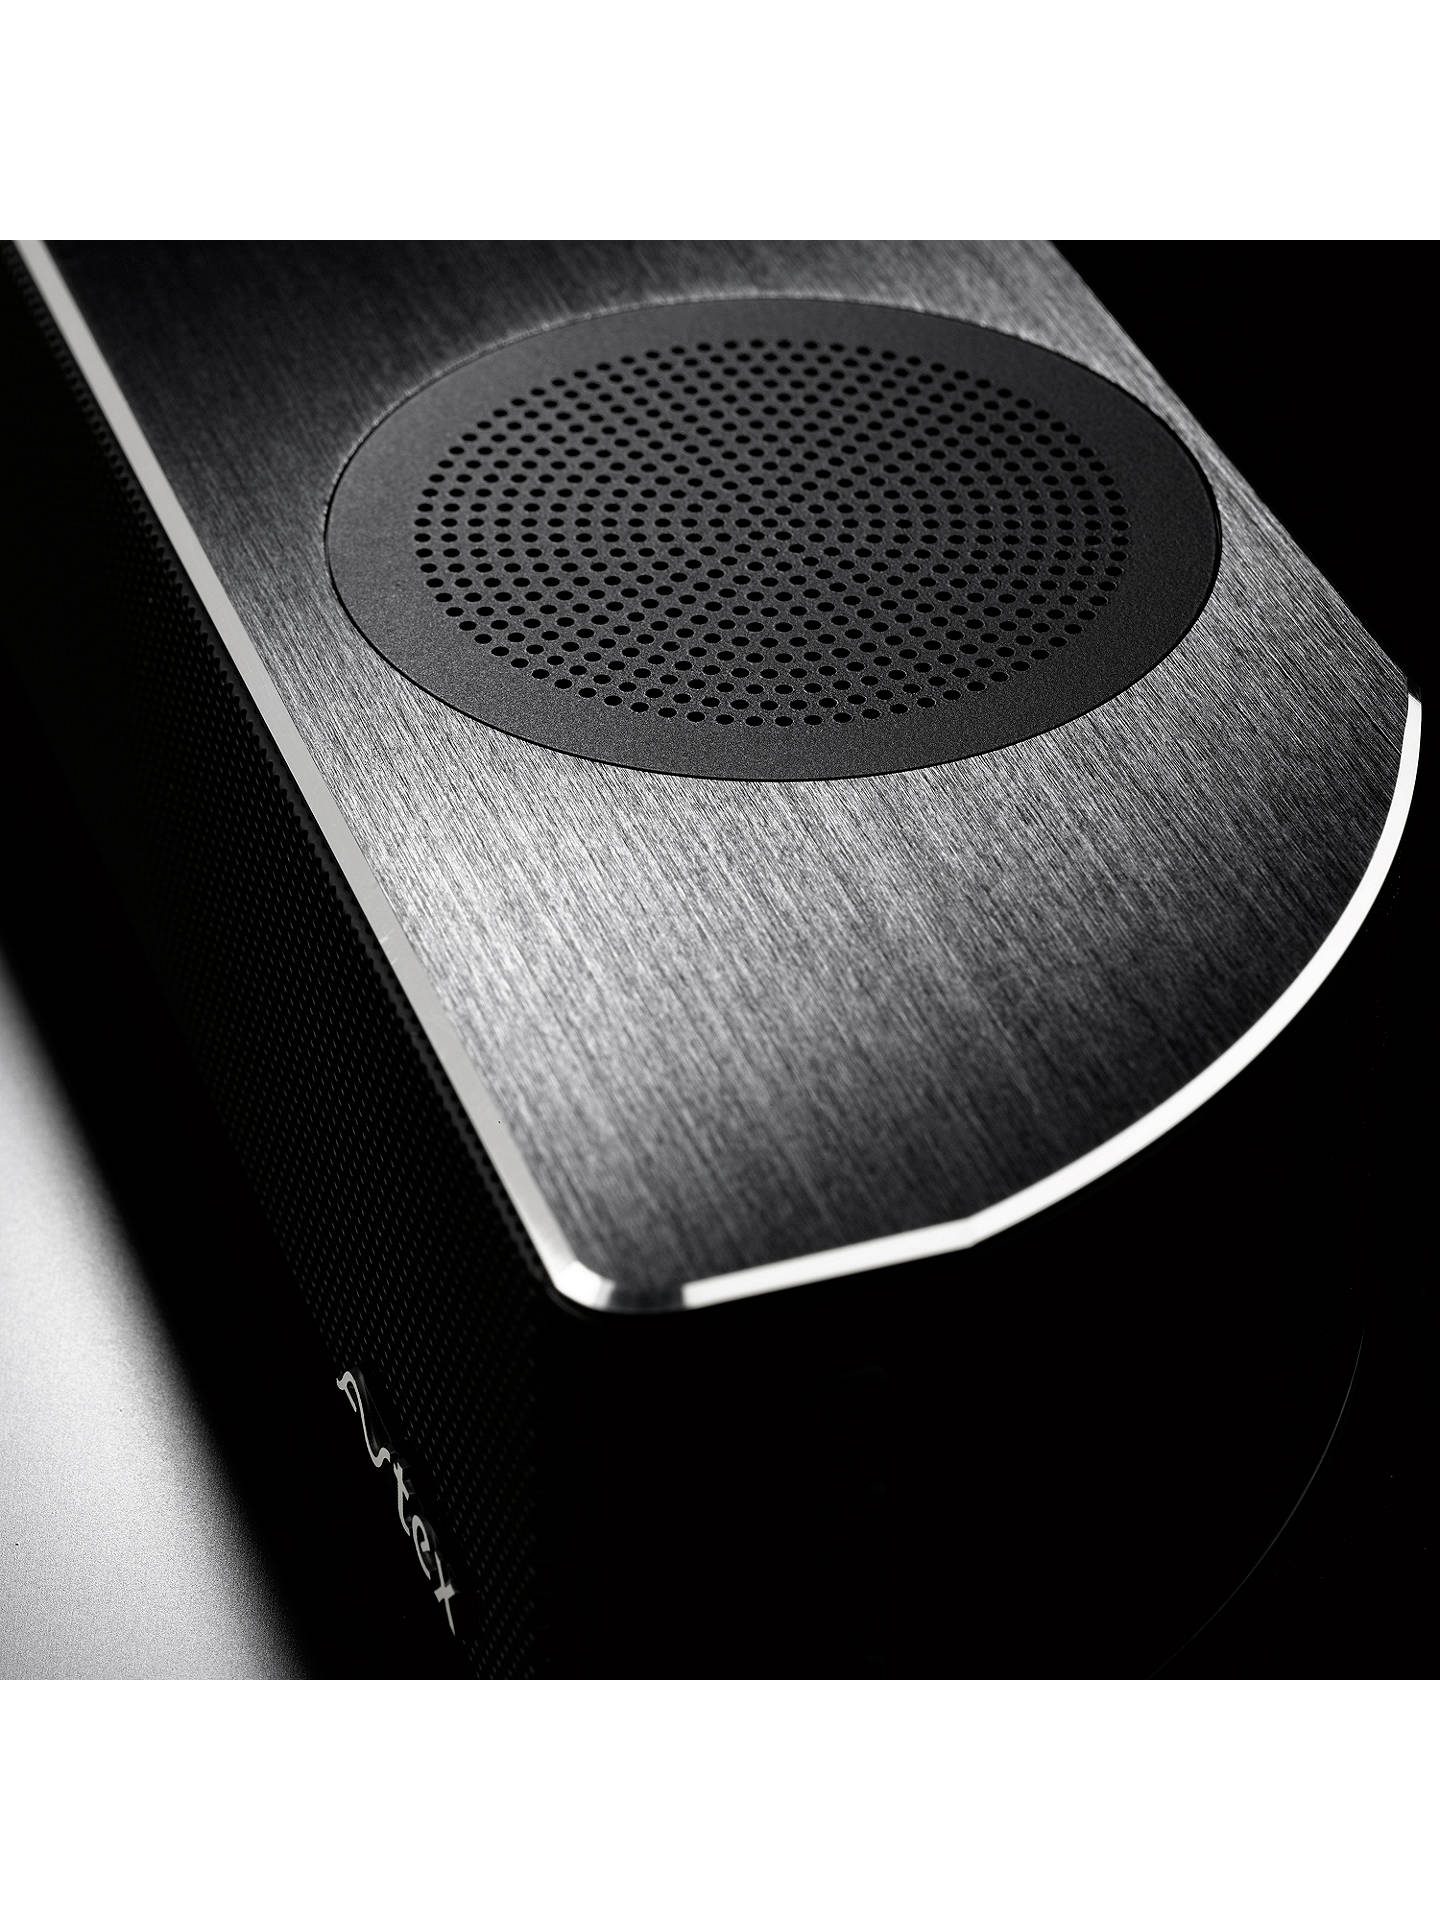 BuyAvtex SB195BT Bluetooth All-in-One Mini Sound Bar Online at johnlewis.com